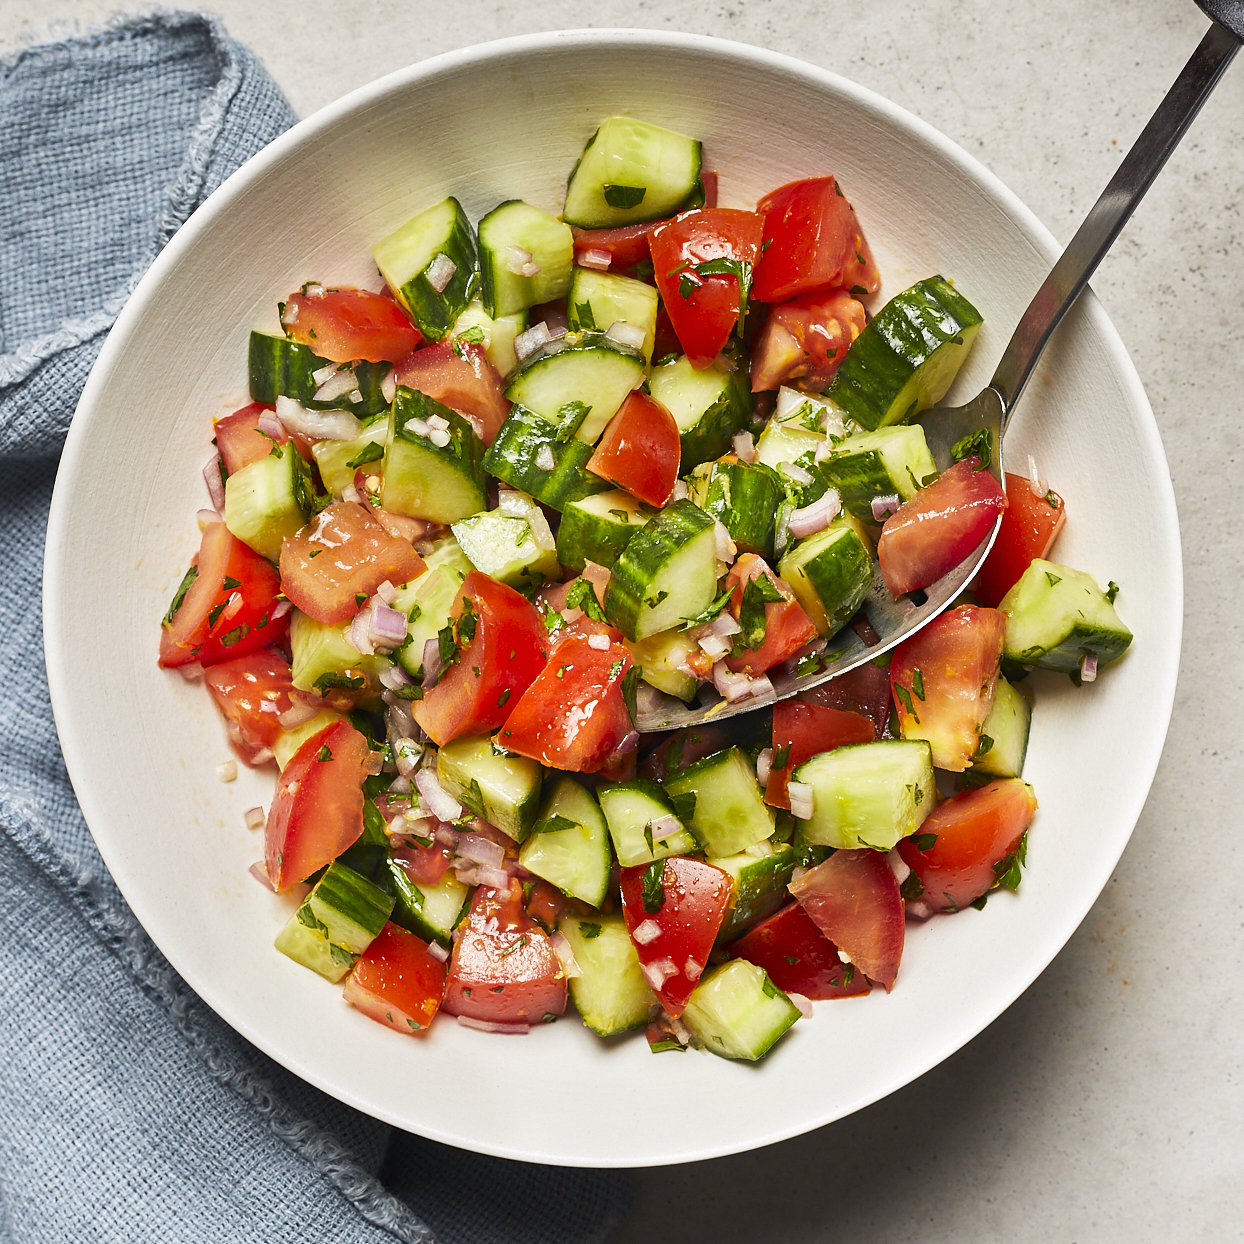 It doesn't get easier than a cucumber and tomato summer salad! Fresh cucumber and juicy ripe tomatoes are all you need to really make this salad shine. Marinating cucumbers and tomatoes in vinegar with a touch of lemon zest infuses the dish with tangy citrus flavor. Source: EatingWell.com, May 2020